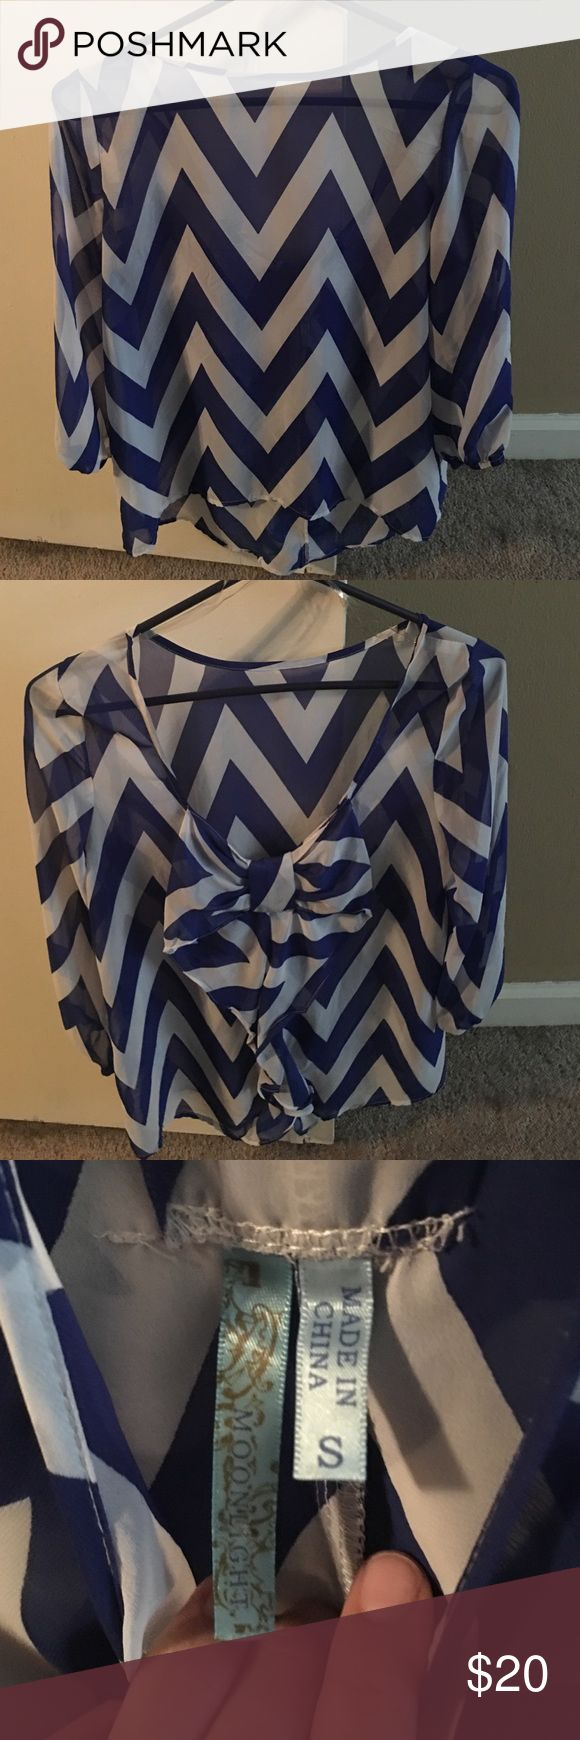 Chevron bow back shirt! Worn once! Boutique shirt with bow back! Francesca's Collections Tops Blouses